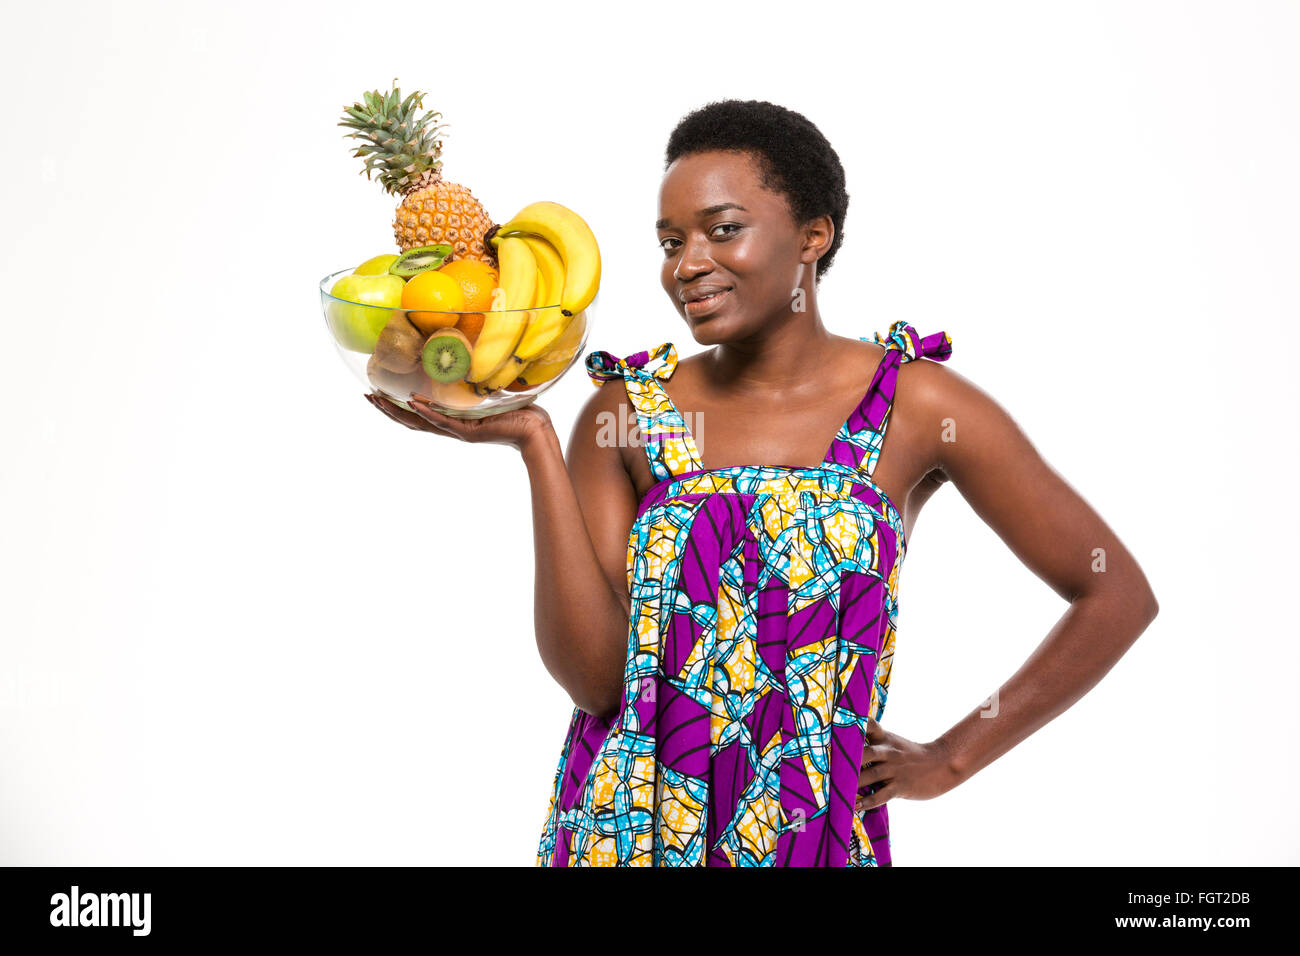 Cheerful attractive african american young woman in bright sundress standing and holding glass bowl with fruits - Stock Image